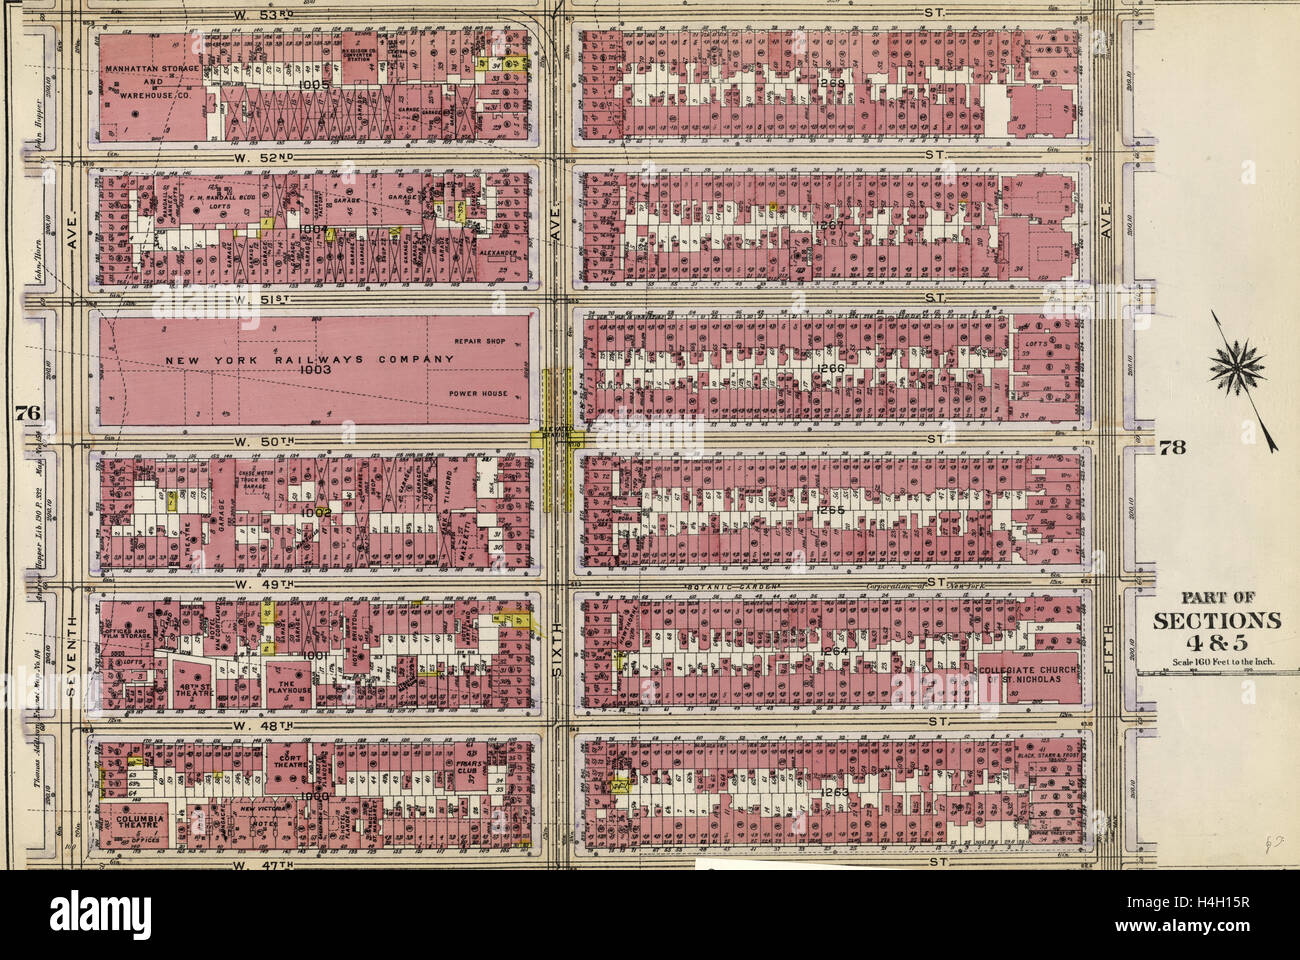 Plate 77: Bounded by W. 53rd Street, Fifth Avenue, W. 47th Street, and Seventh Avenue, New York, USA - Stock Image